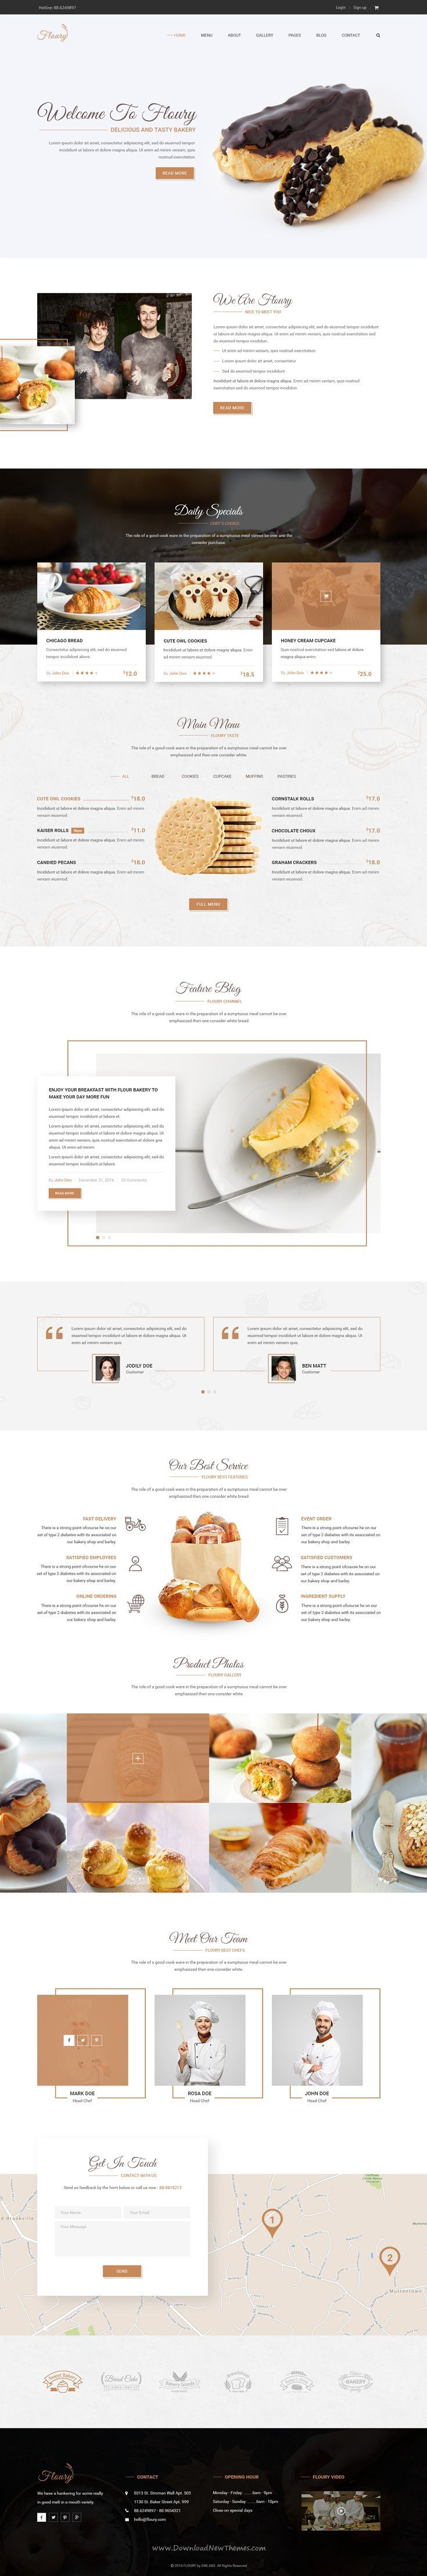 Floury is clean & modern #PSD template for #bakery, #food, beverage, cuisine…  Chose WebsitesYES.com for your design needs.